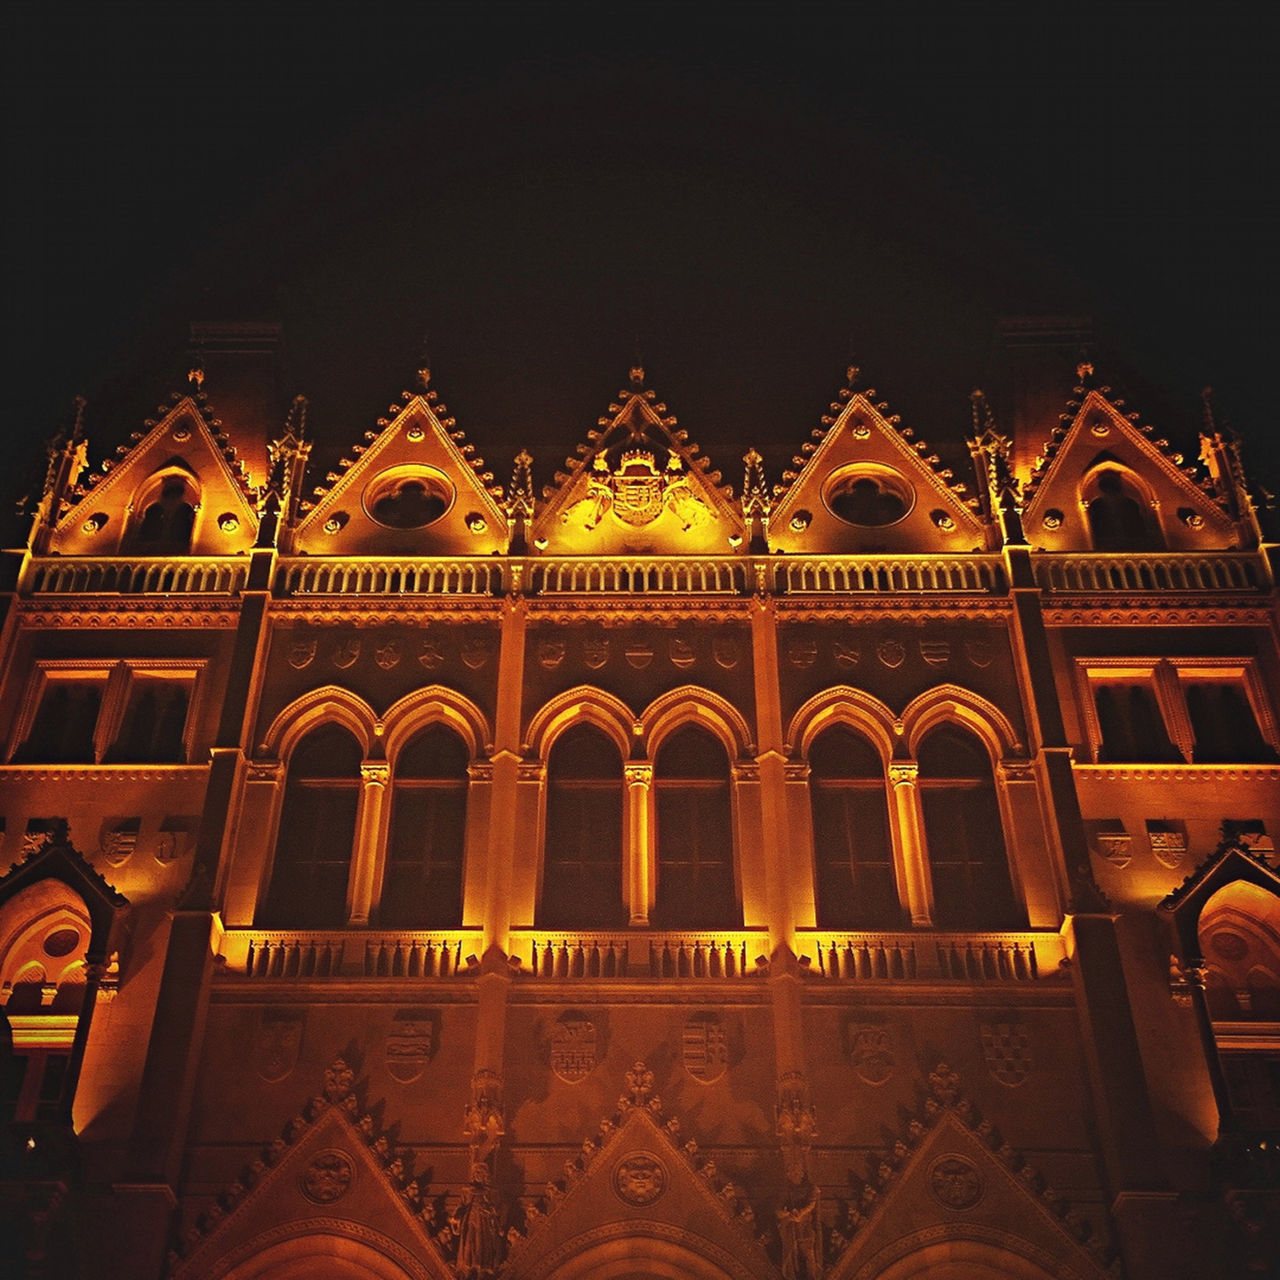 Arch Architecture Budapest Building Exterior Built Structure City Clear Sky History Hungary Low Angle View Night No People Orange Color Orszaghaz Outdoors Parlament Sky Window Yellow Cities At Night